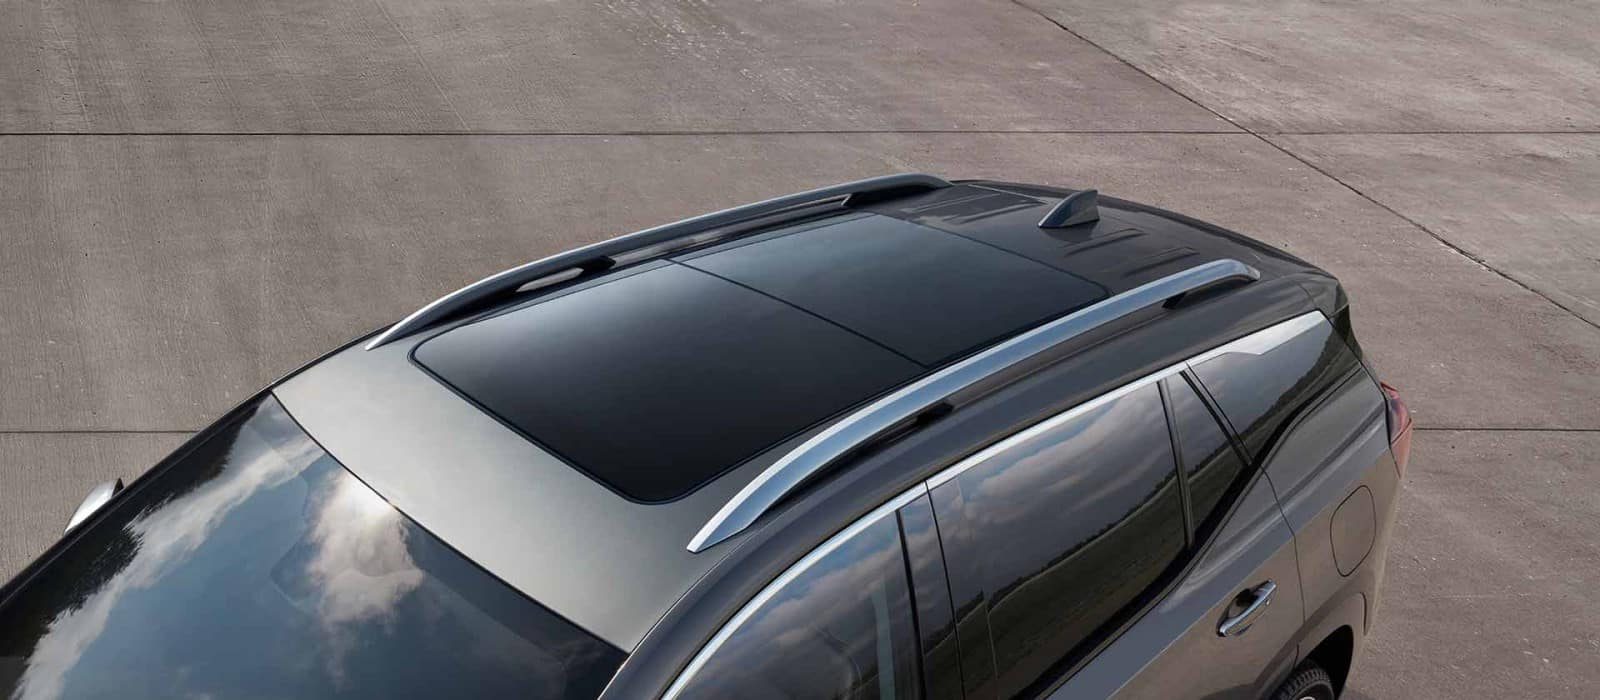 2018 GMC Terrain Panoramic Sunroof Outside View